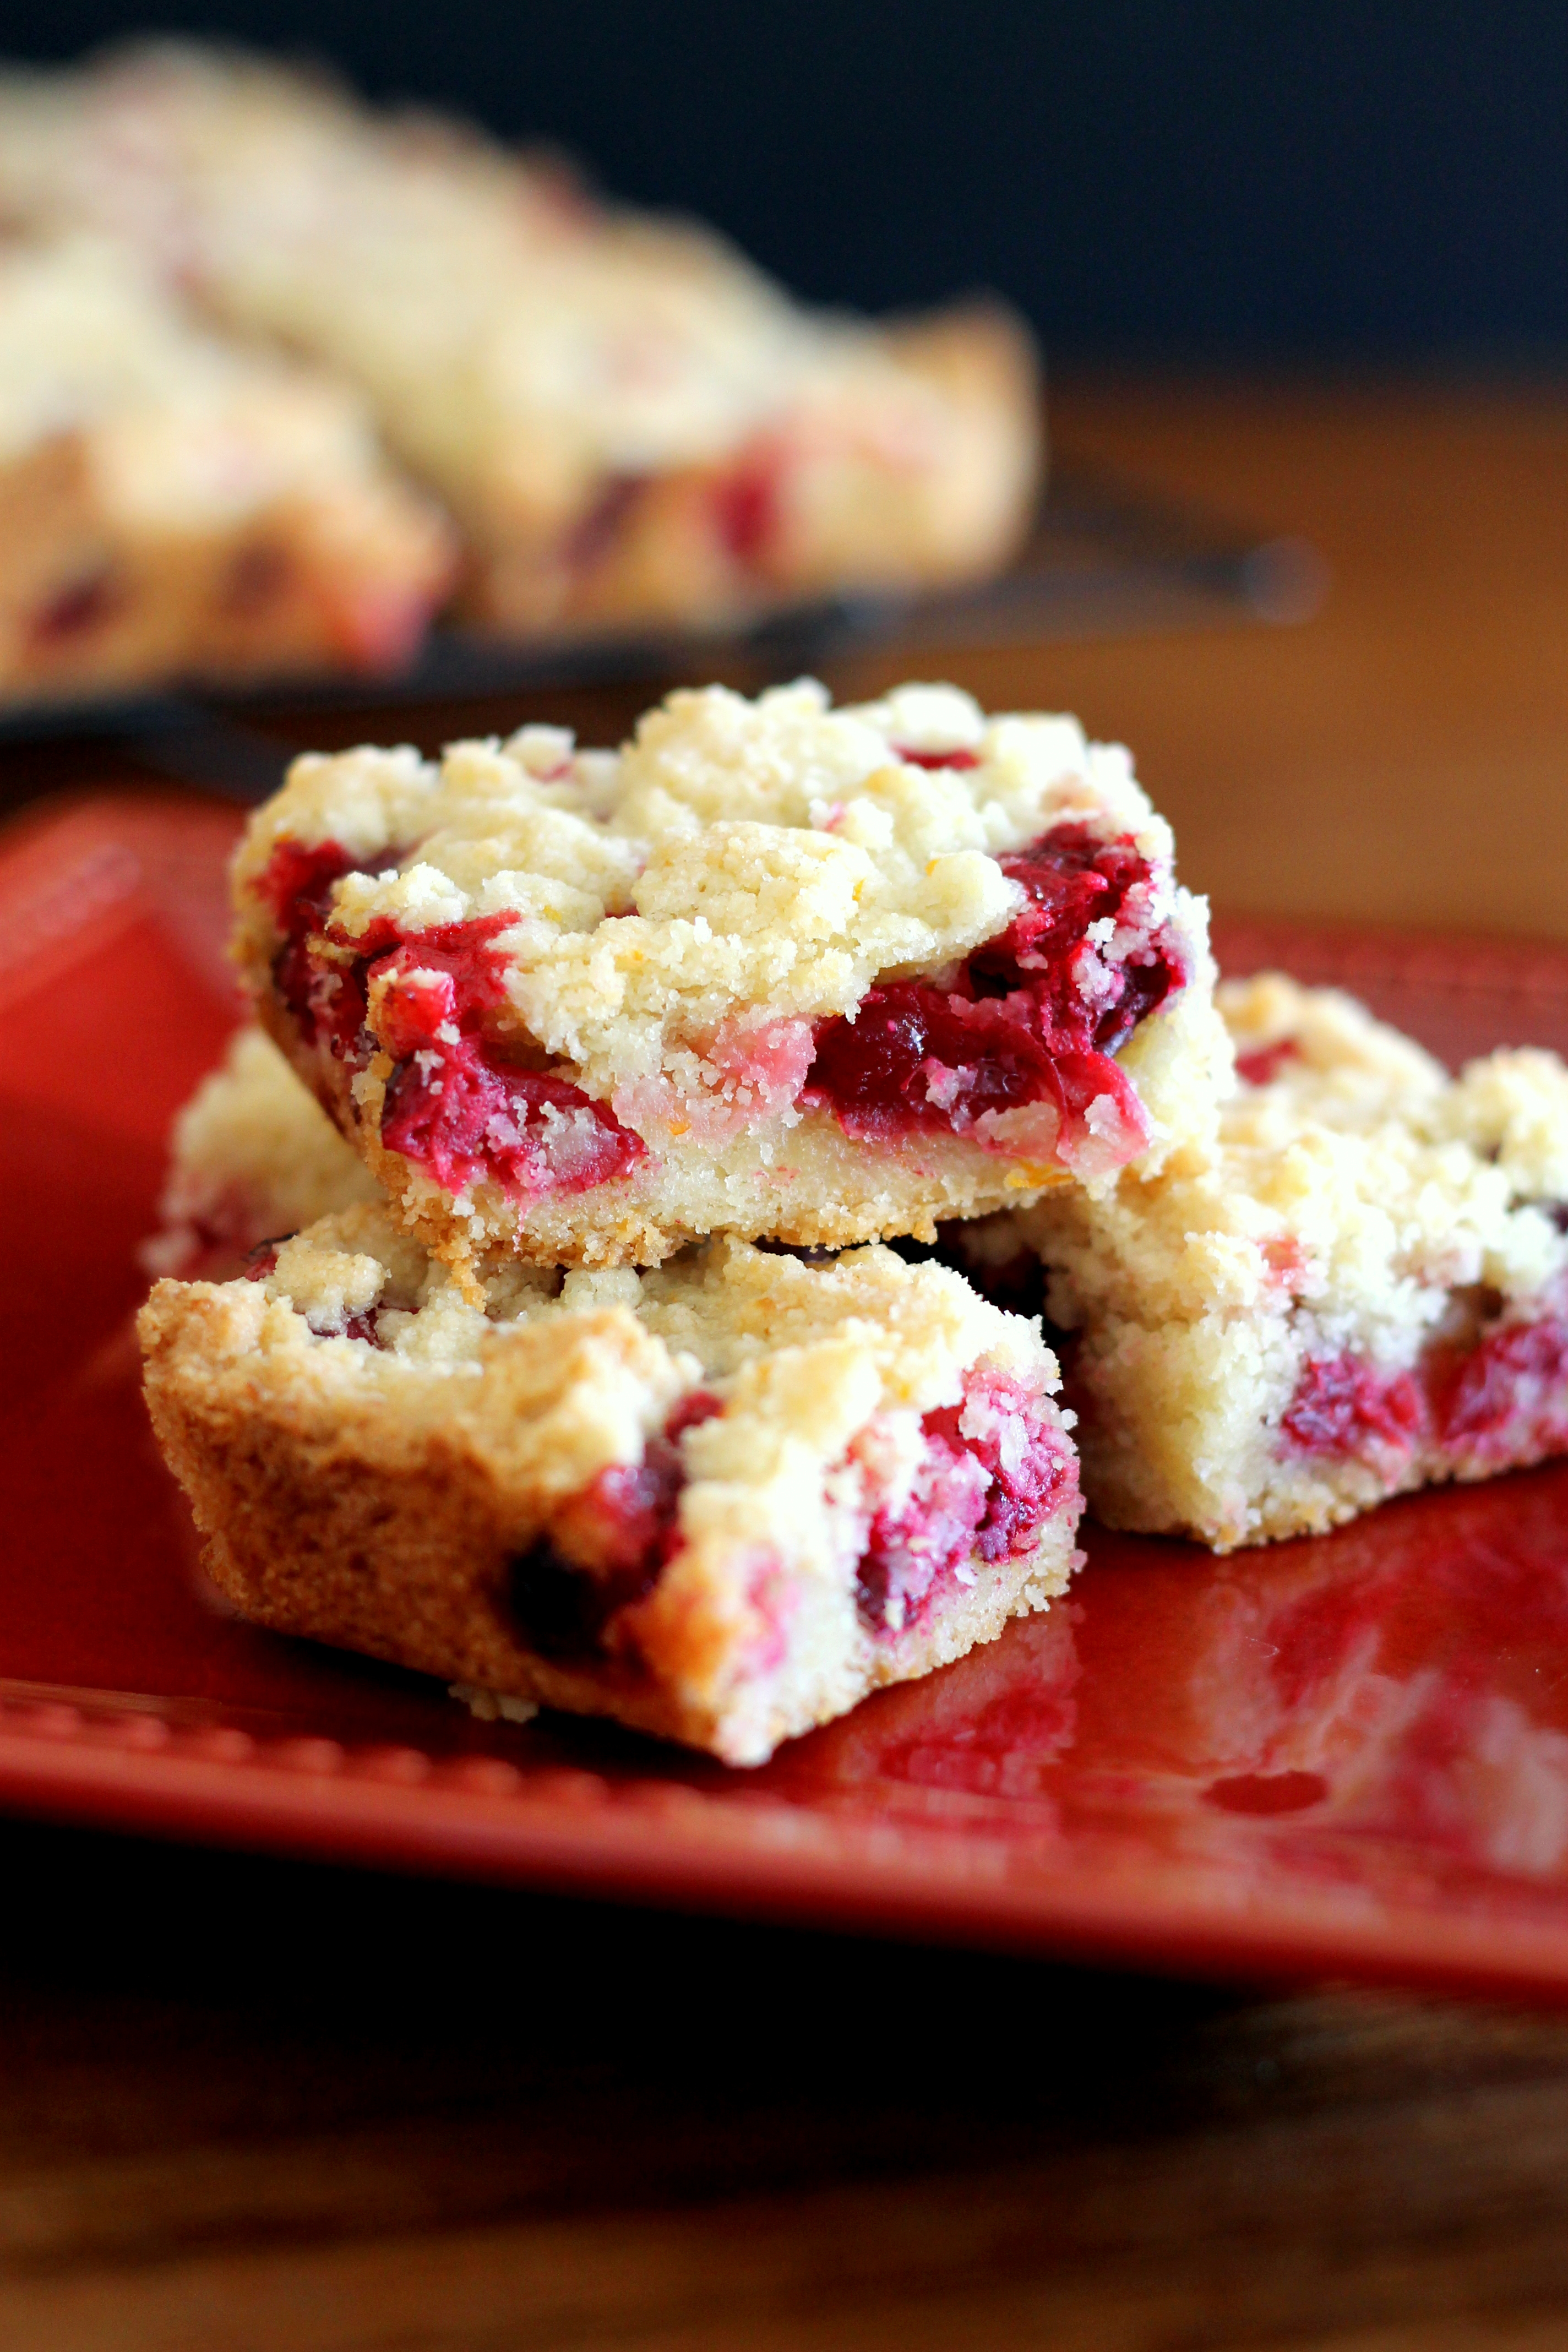 Cranberry Crumb Bars | These easy bars are sweet, tart, and delicious! (From Bakerita.com)